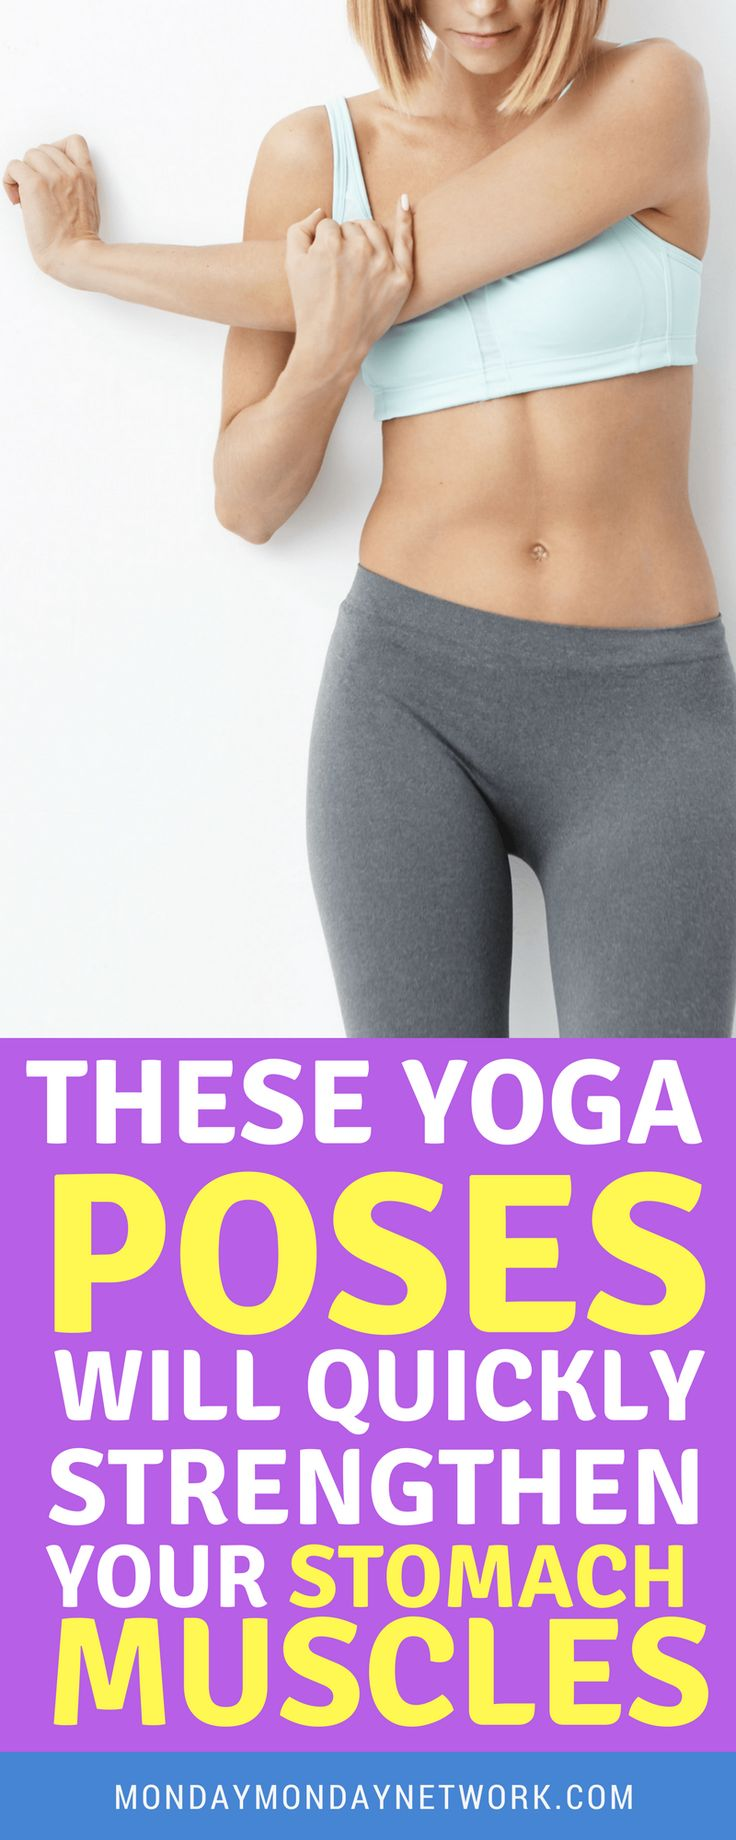 Practice these great yoga poses and this will tone up those tummy muscles!